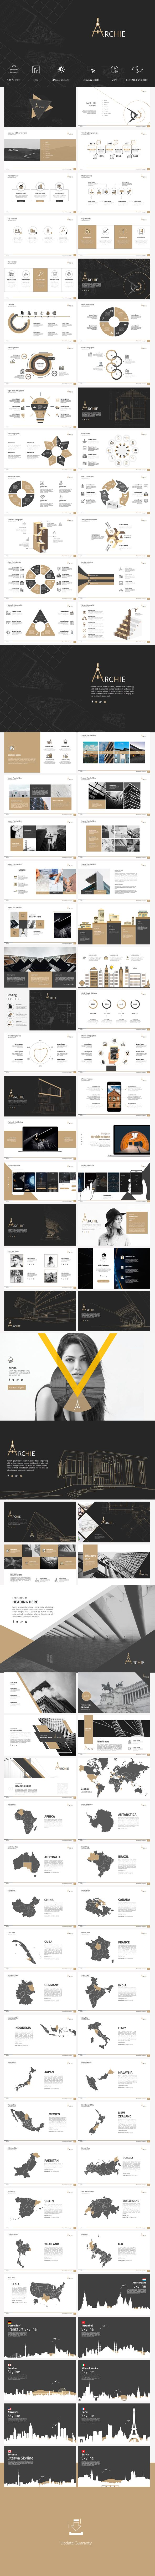 Archie animated presentation template business powerpoint archie animated presentation template business powerpoint toneelgroepblik Image collections